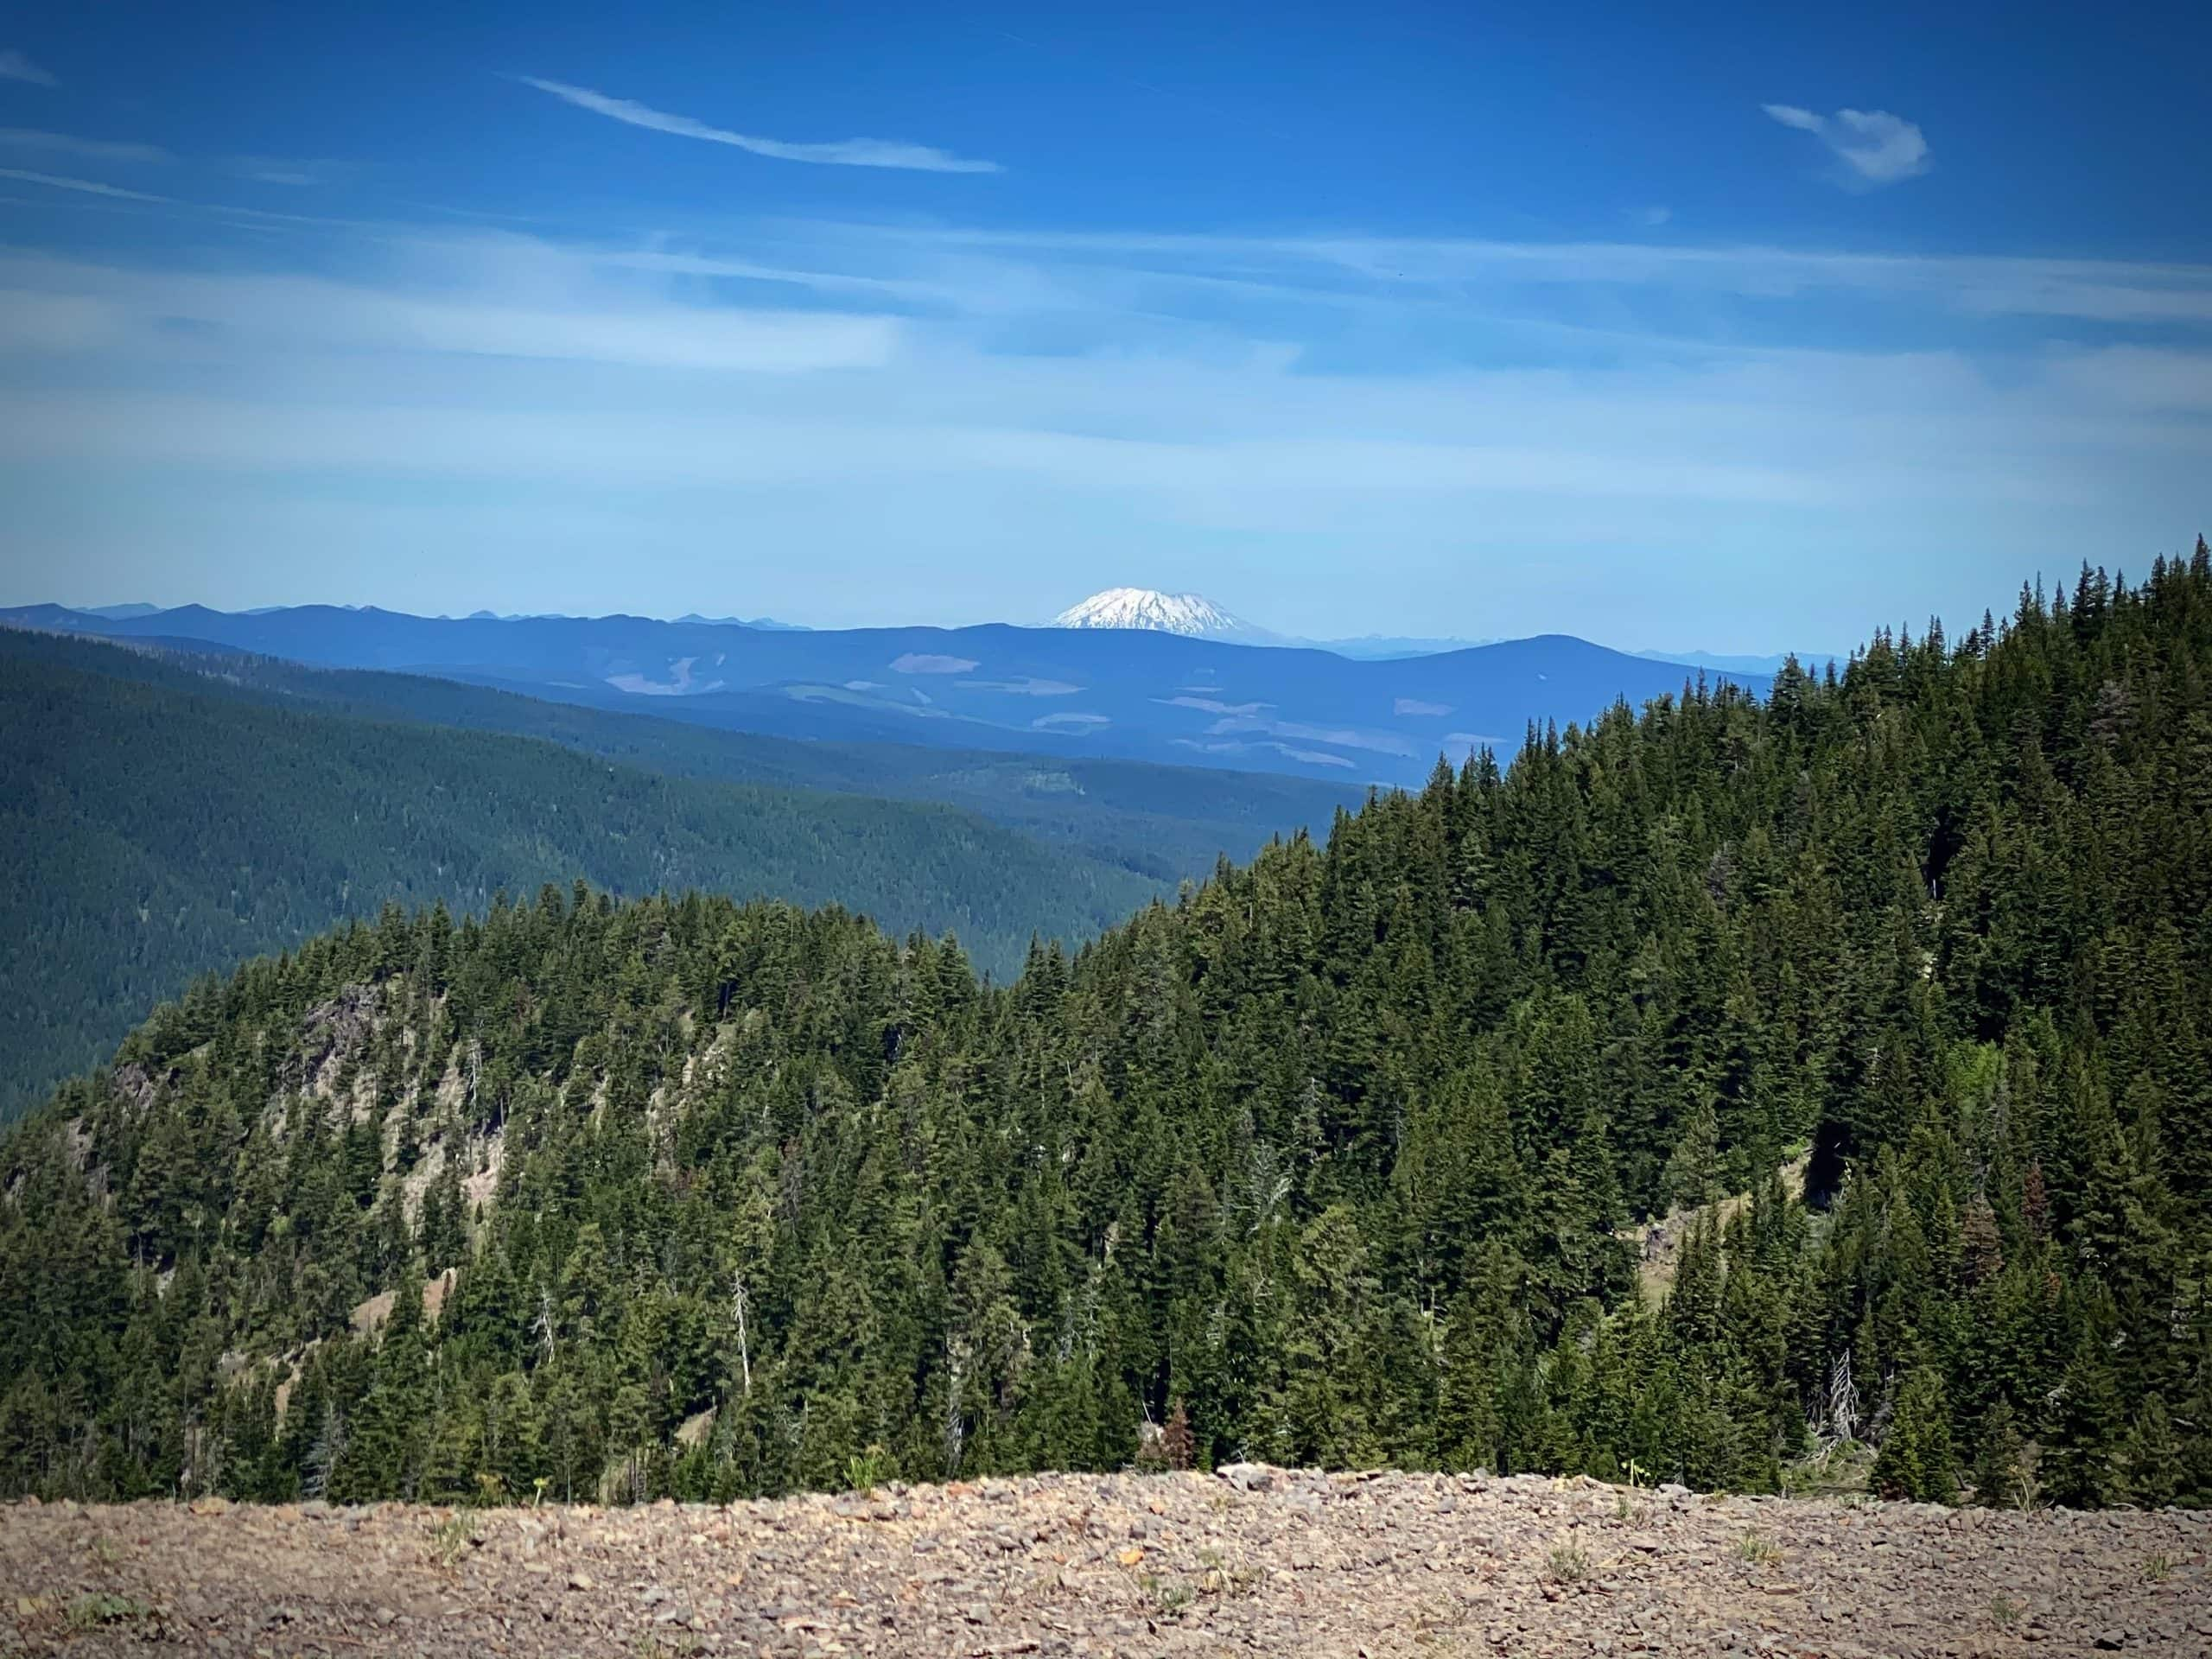 Mt St Helens in the distance. Picture taken from Bennett Pass road near Hood River, Oregon.